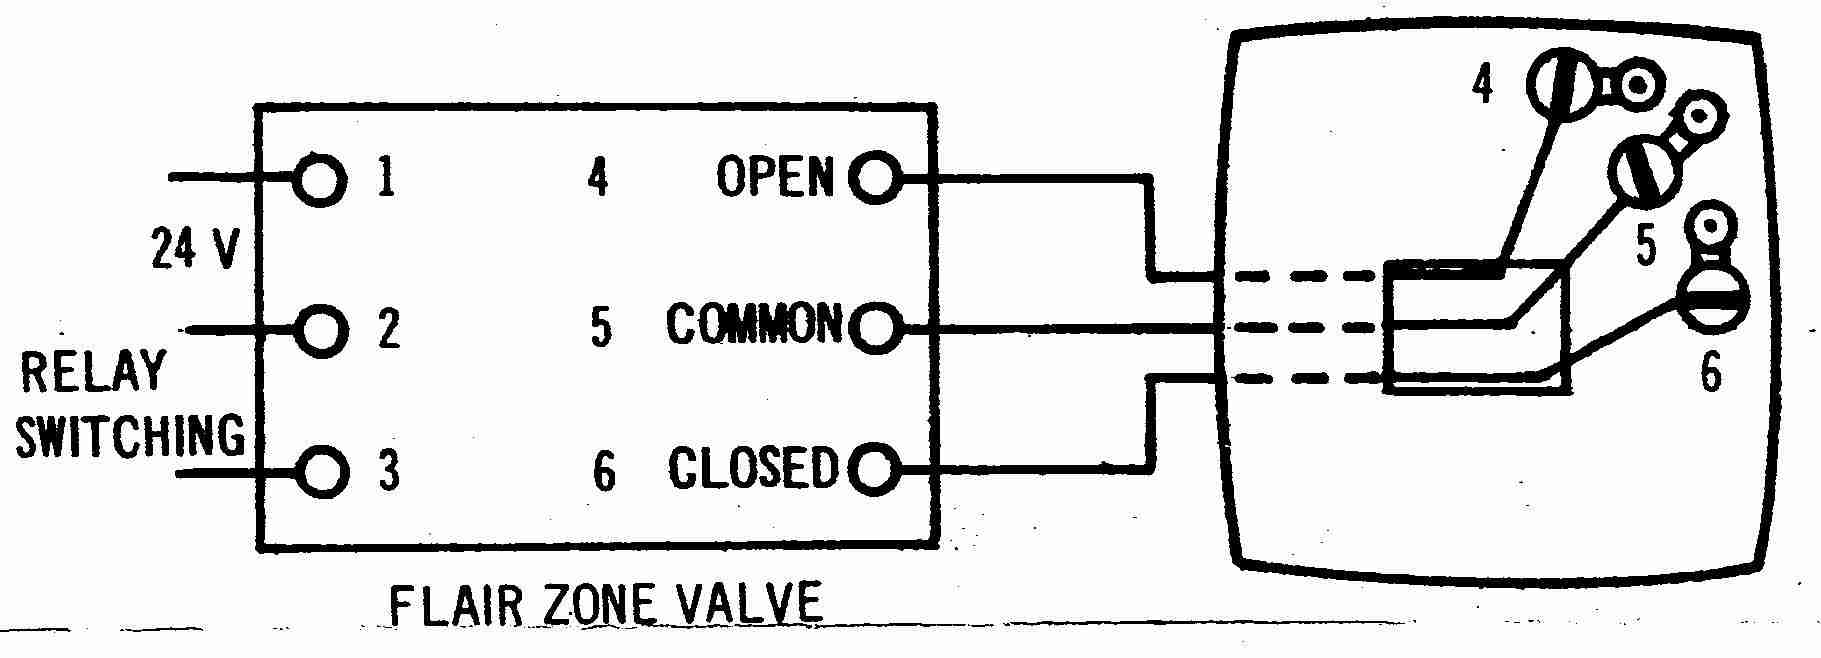 Zone valve wiring installation instructions guide to heating flair 3 wire thermostat wiring controlling a zone valve swarovskicordoba Gallery